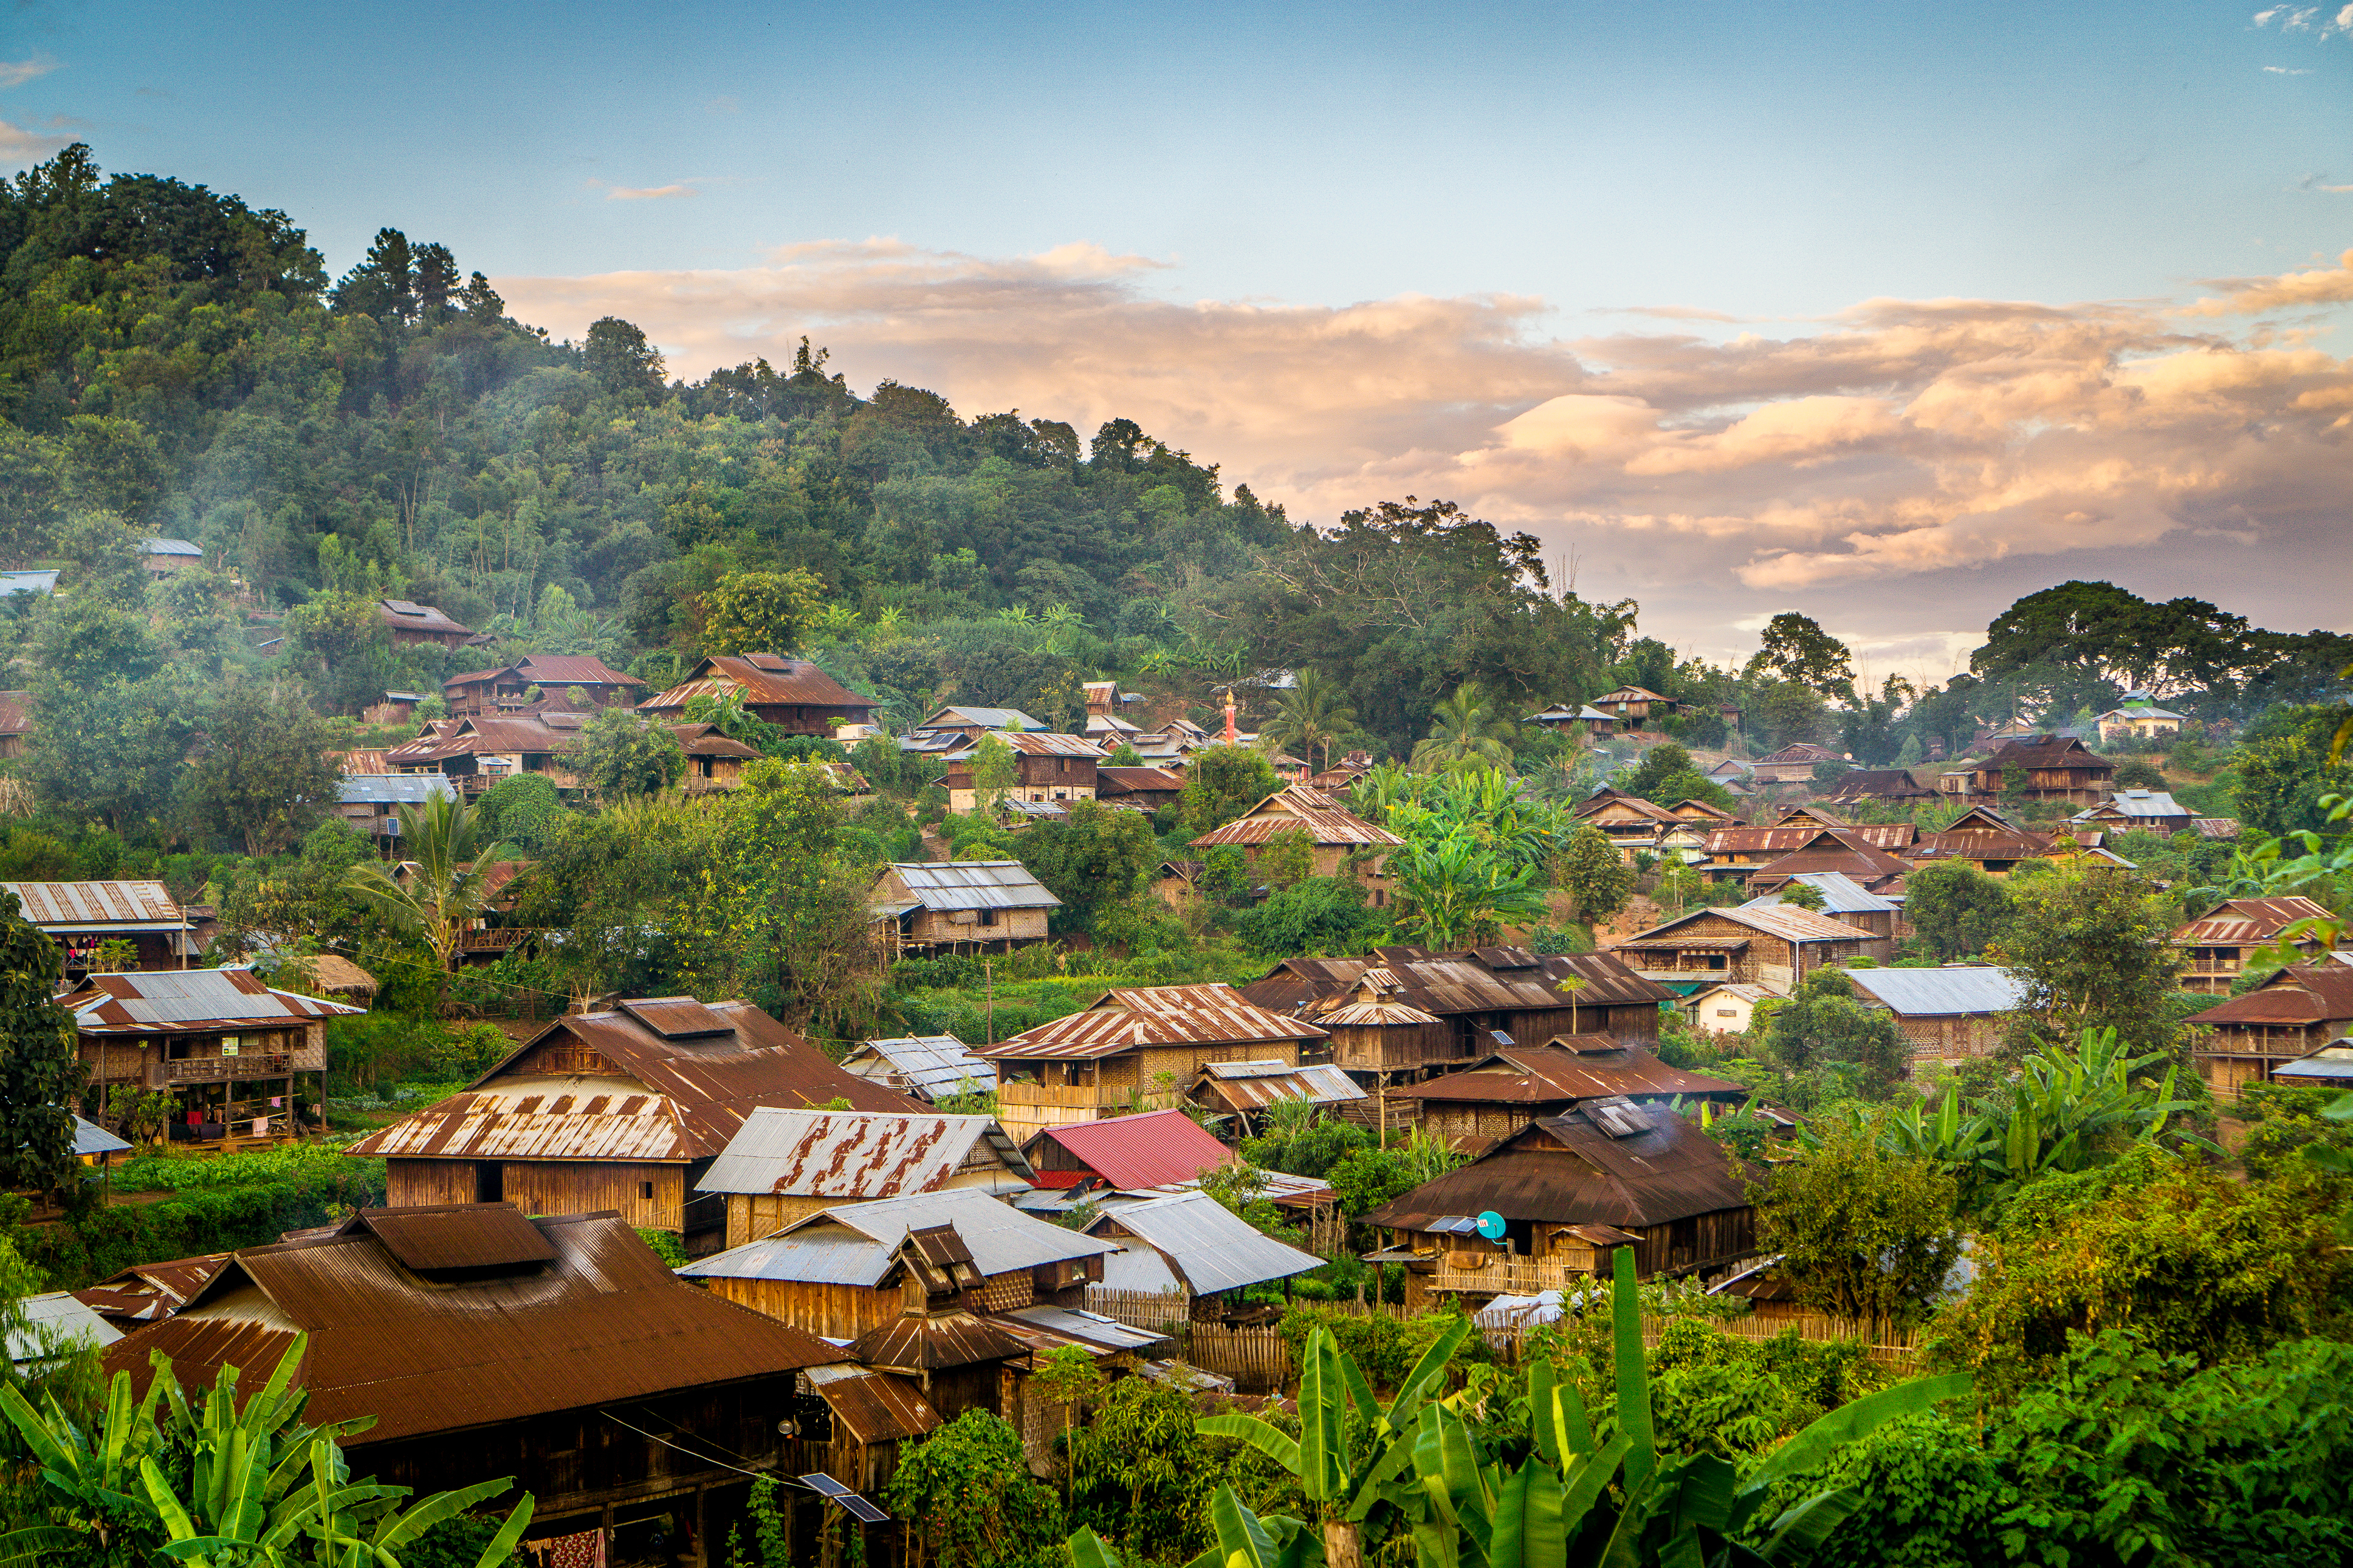 A rural mountain village in Shan State, Myanmar